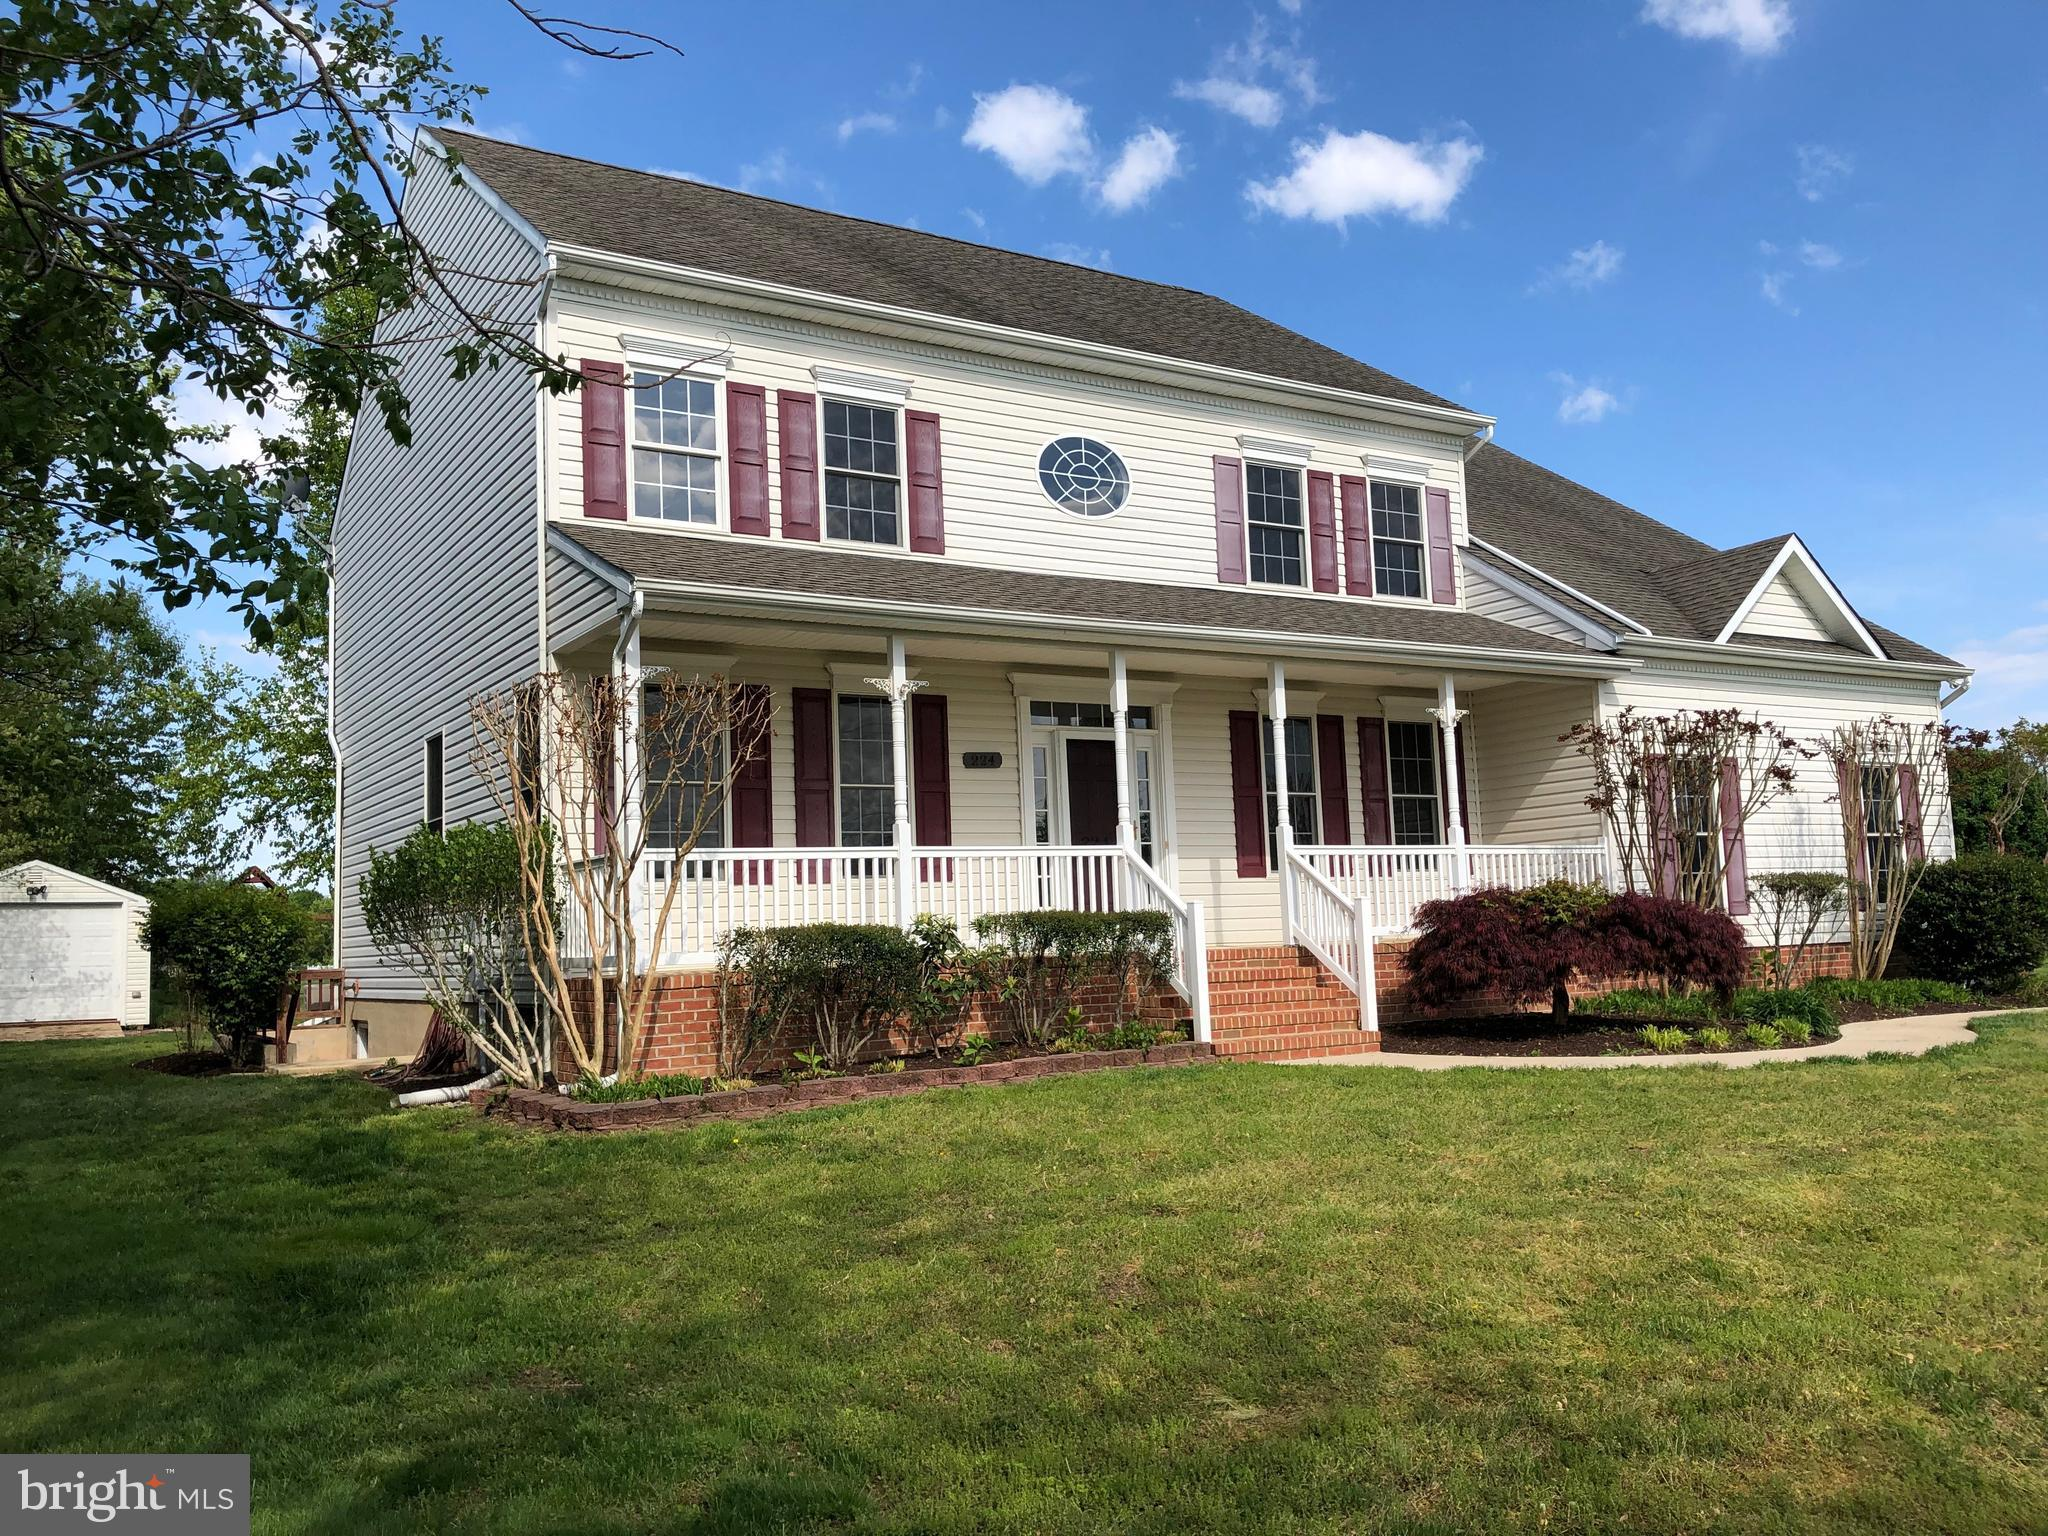 224 PRICE STATION ROAD, CHURCH HILL, MD 21623